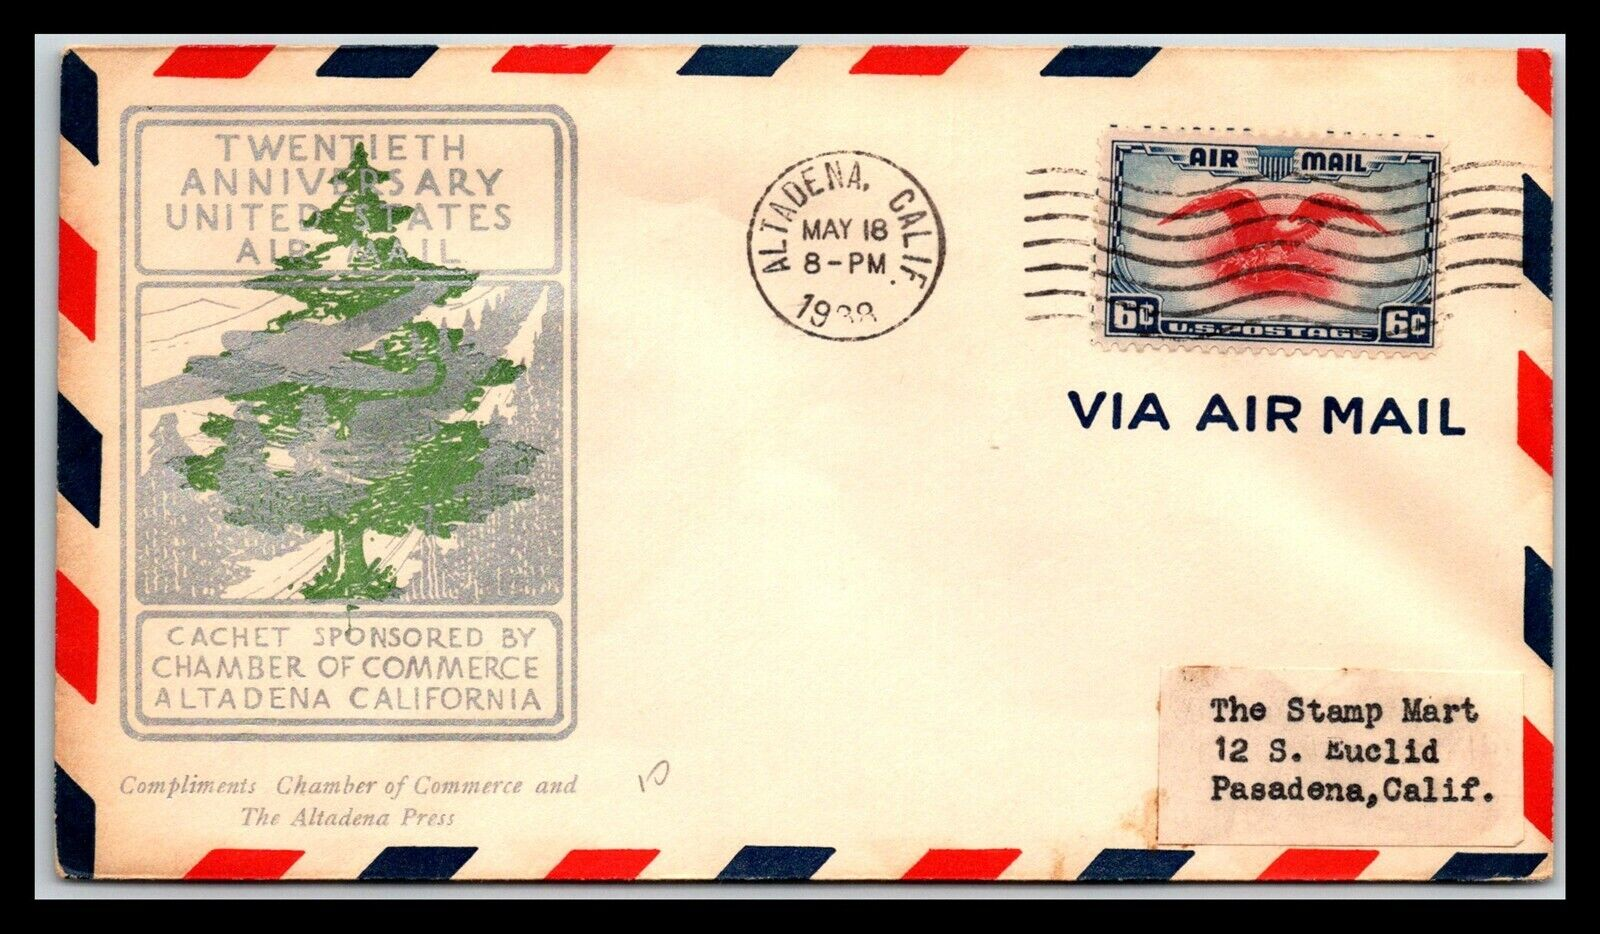 GP GOLDPATH US COVER 1938, ALTADENA, CA. AIR MAIL CV424 P23 - $1.25